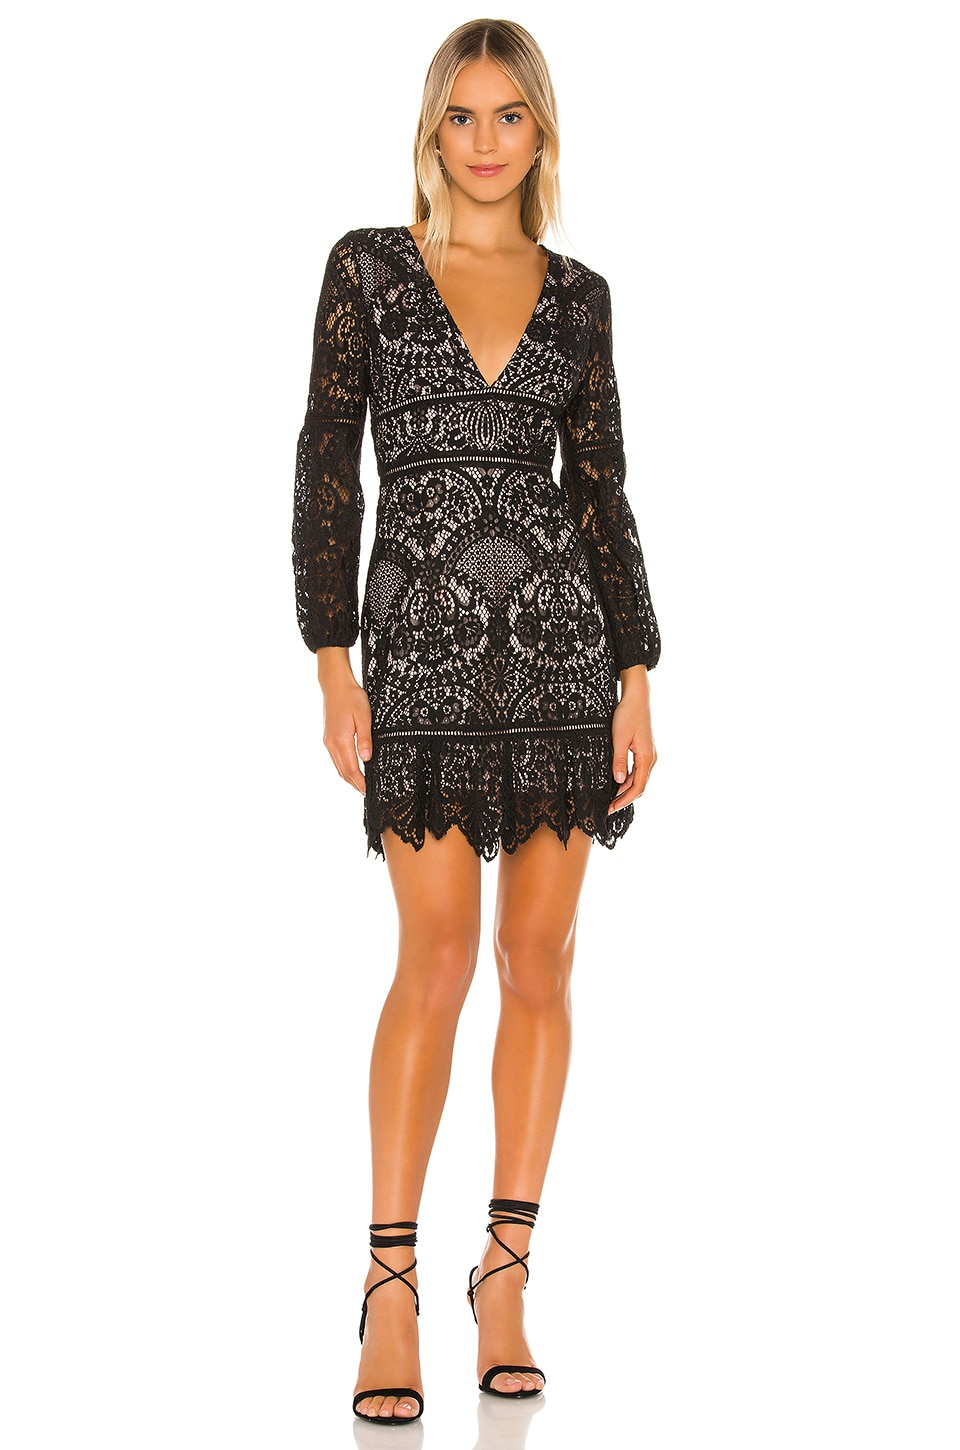 BB Dakota RSVP by BB Dakota That's Deep Lace Dress in Black